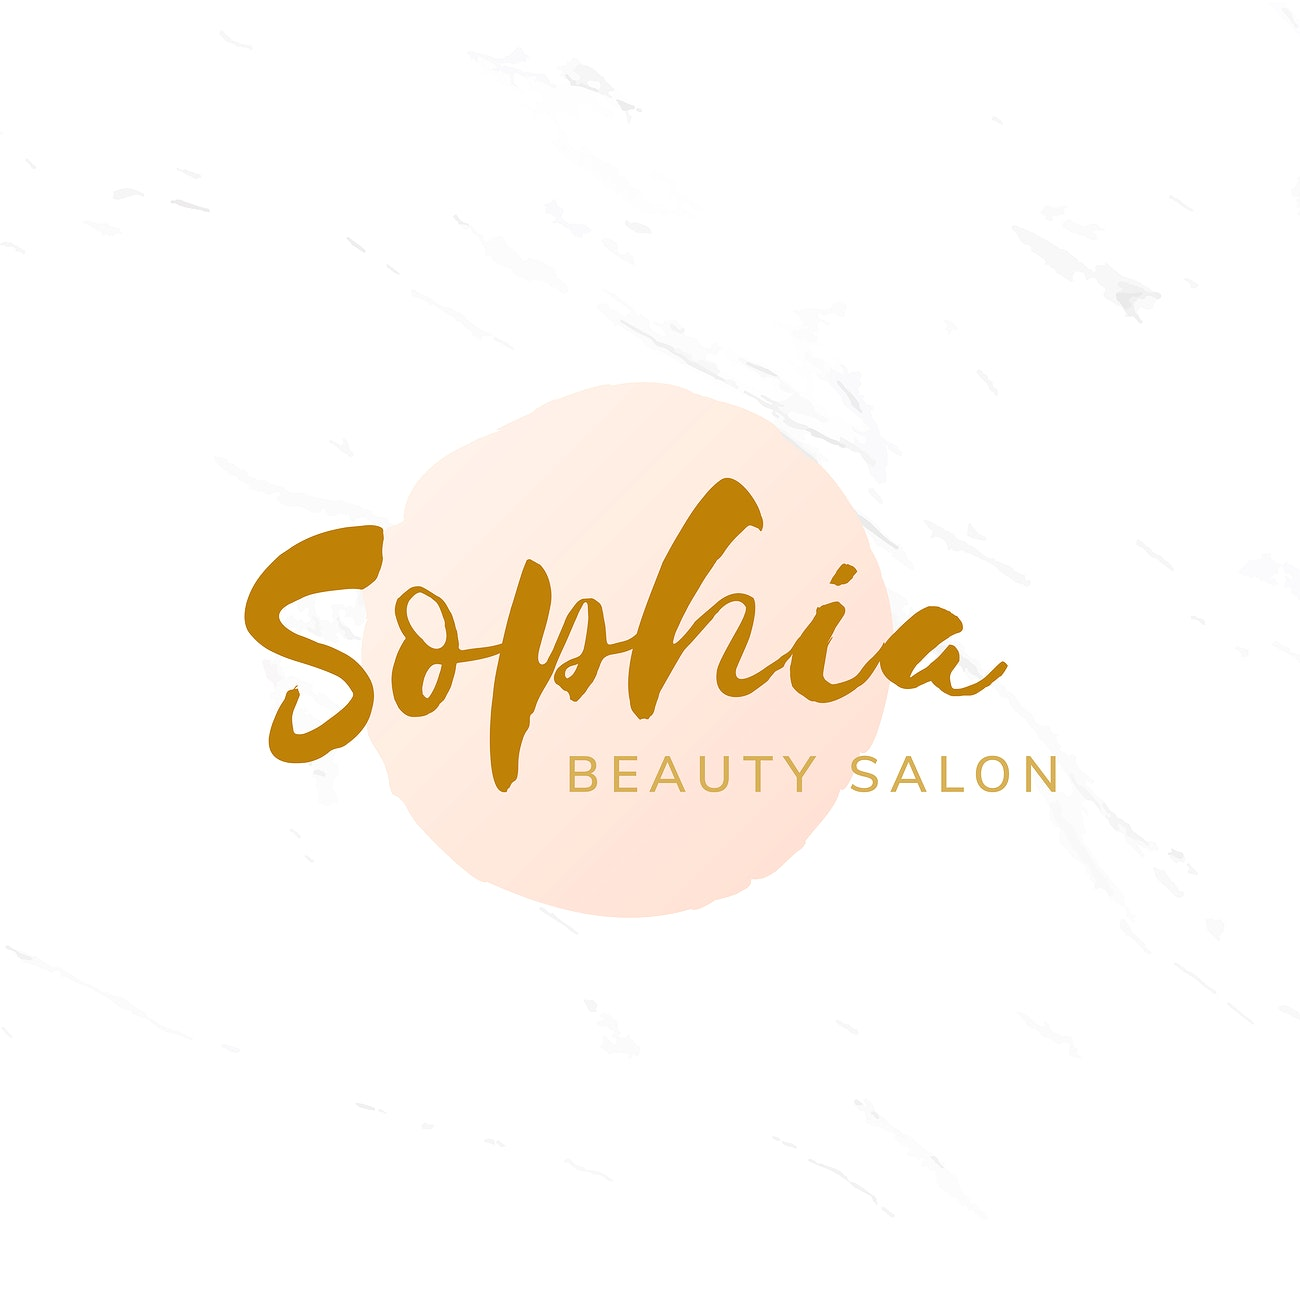 Golden Beauty Salon Logo Design Vector Royalty Free Vector 524598